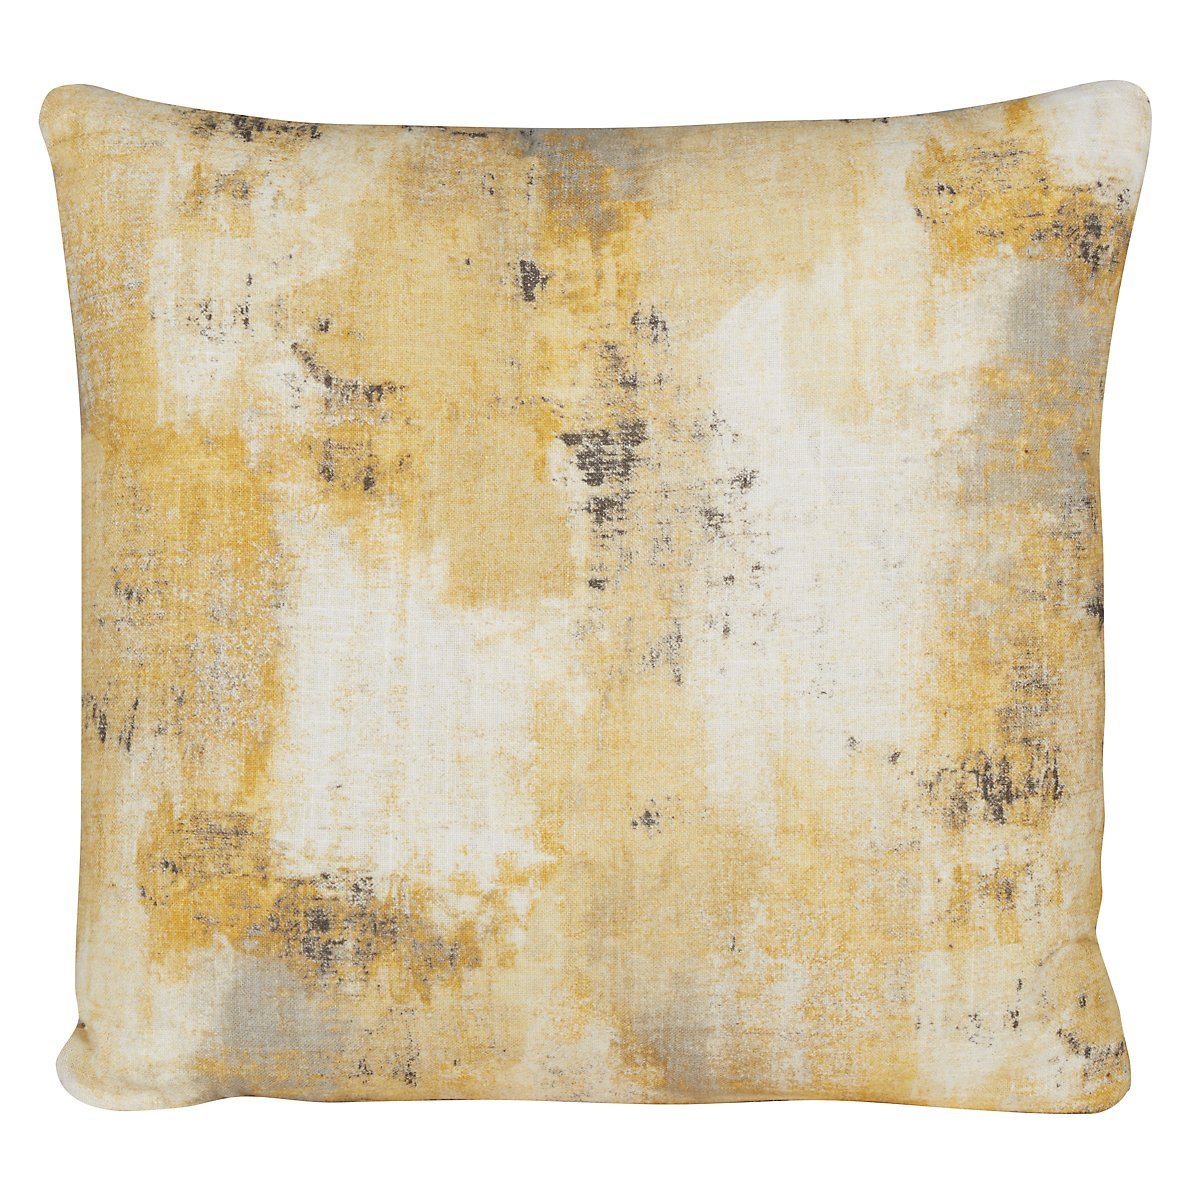 Antalya Yellow Fabric Square Accent Pillow